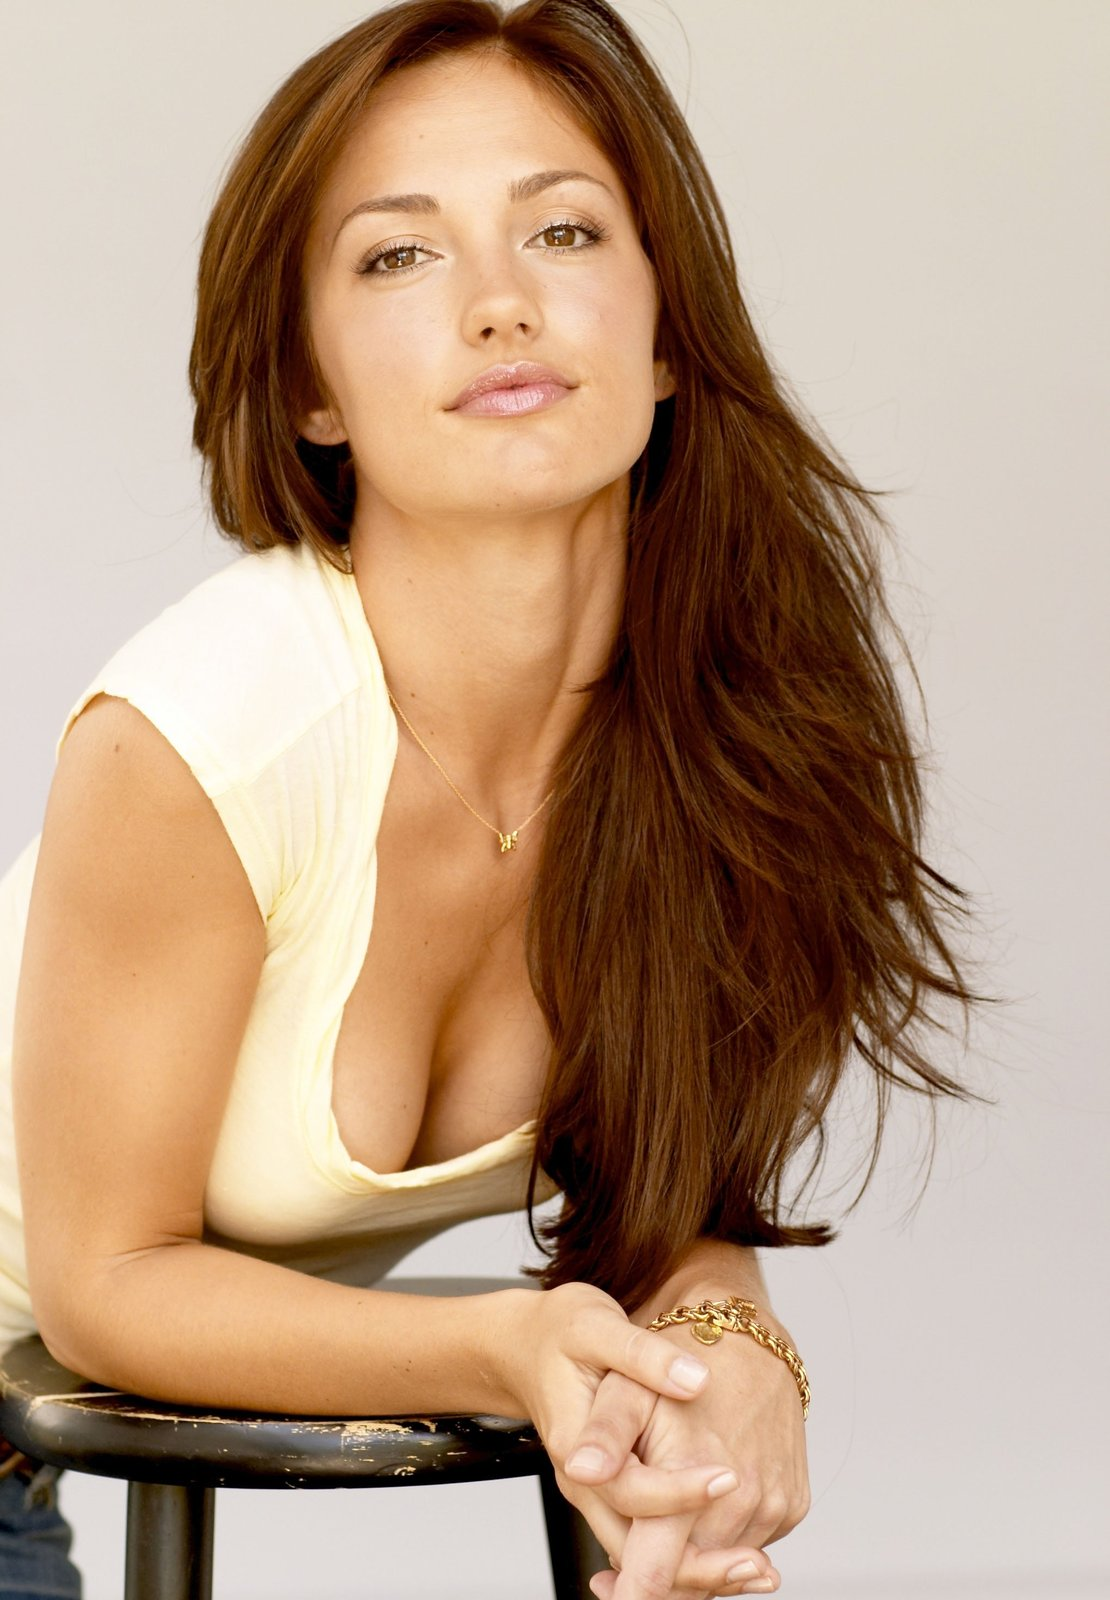 minka kelly uhq celebrity images 15 Sexy Minka Kelly